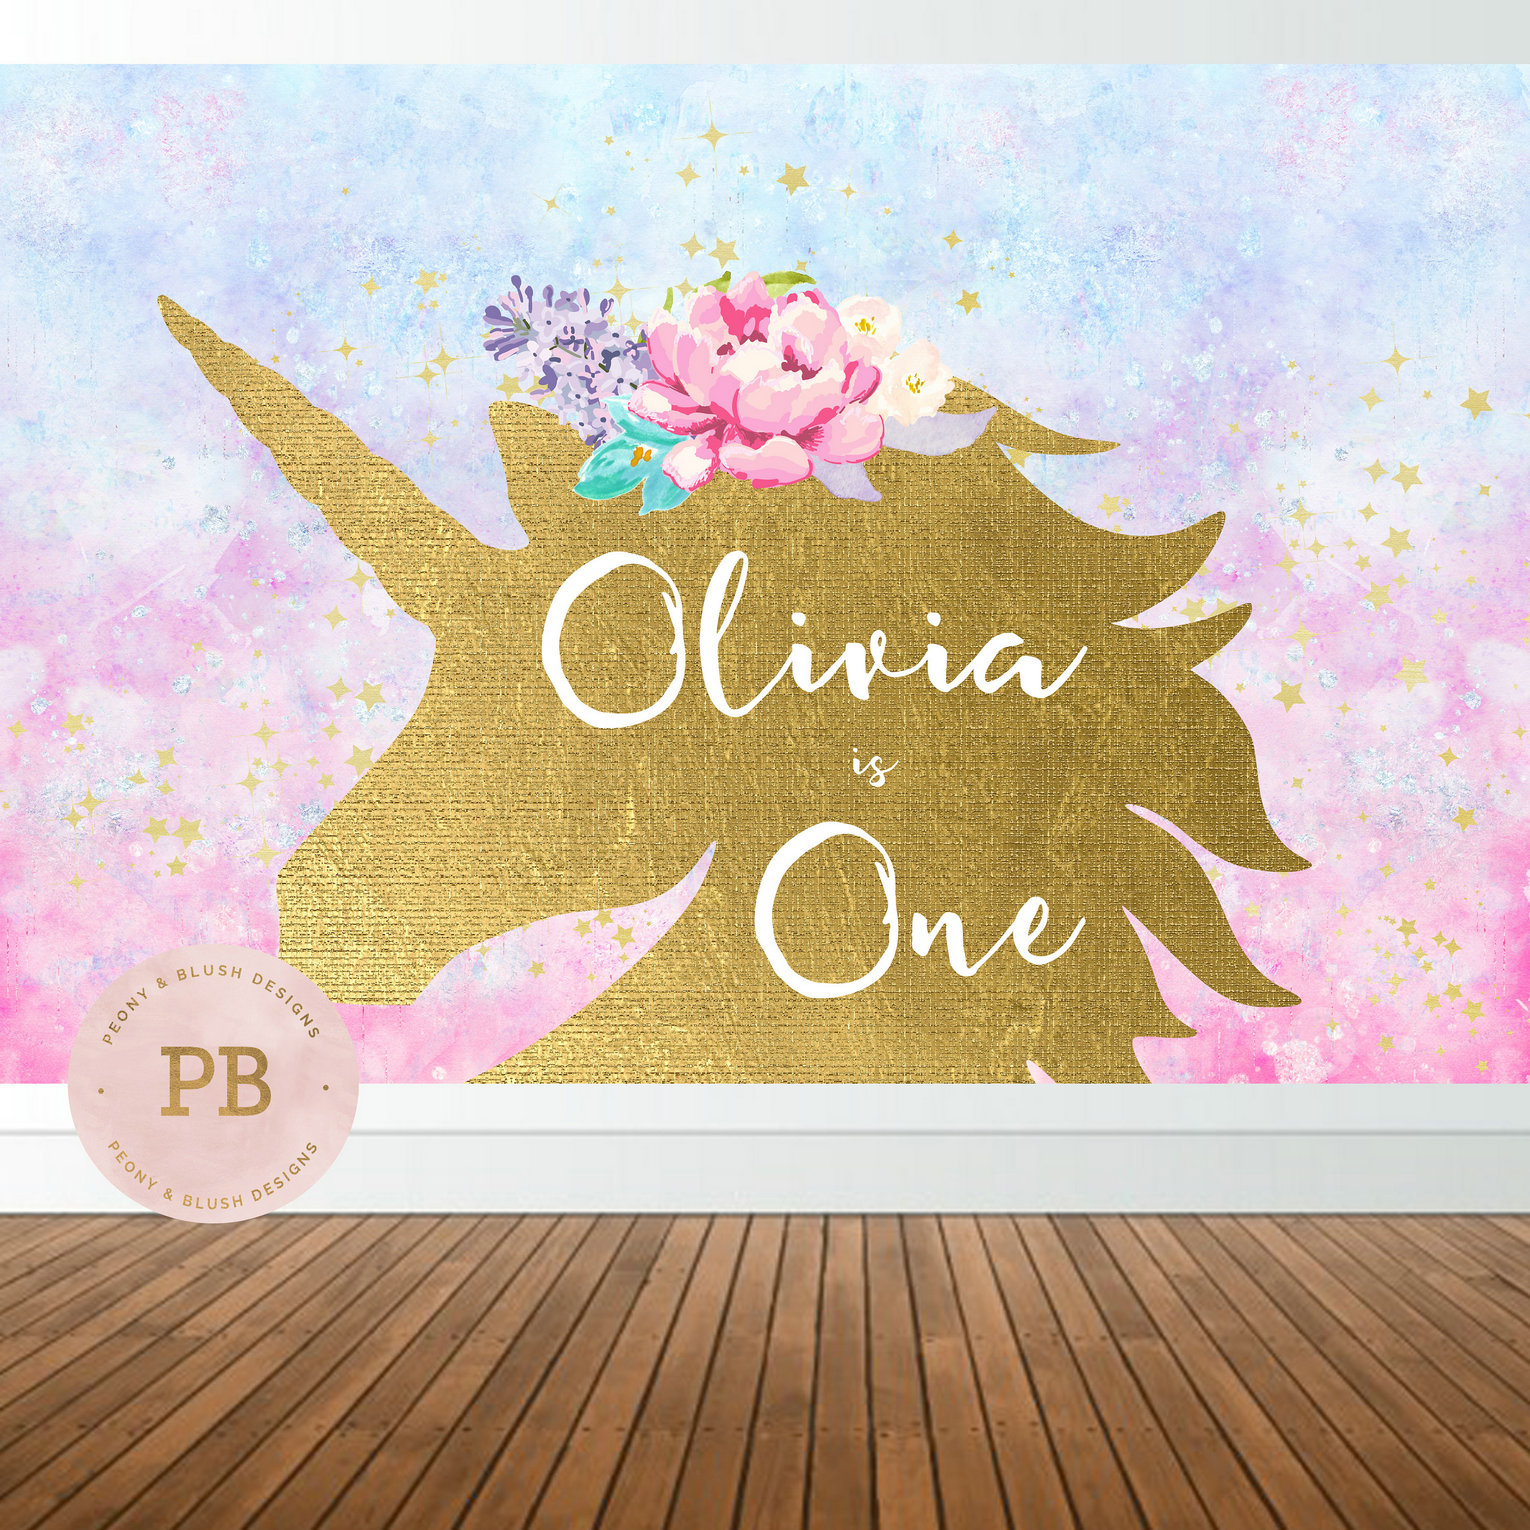 custom unicorn birthday flower colorful clouds background High quality Computer print party photo backdrop